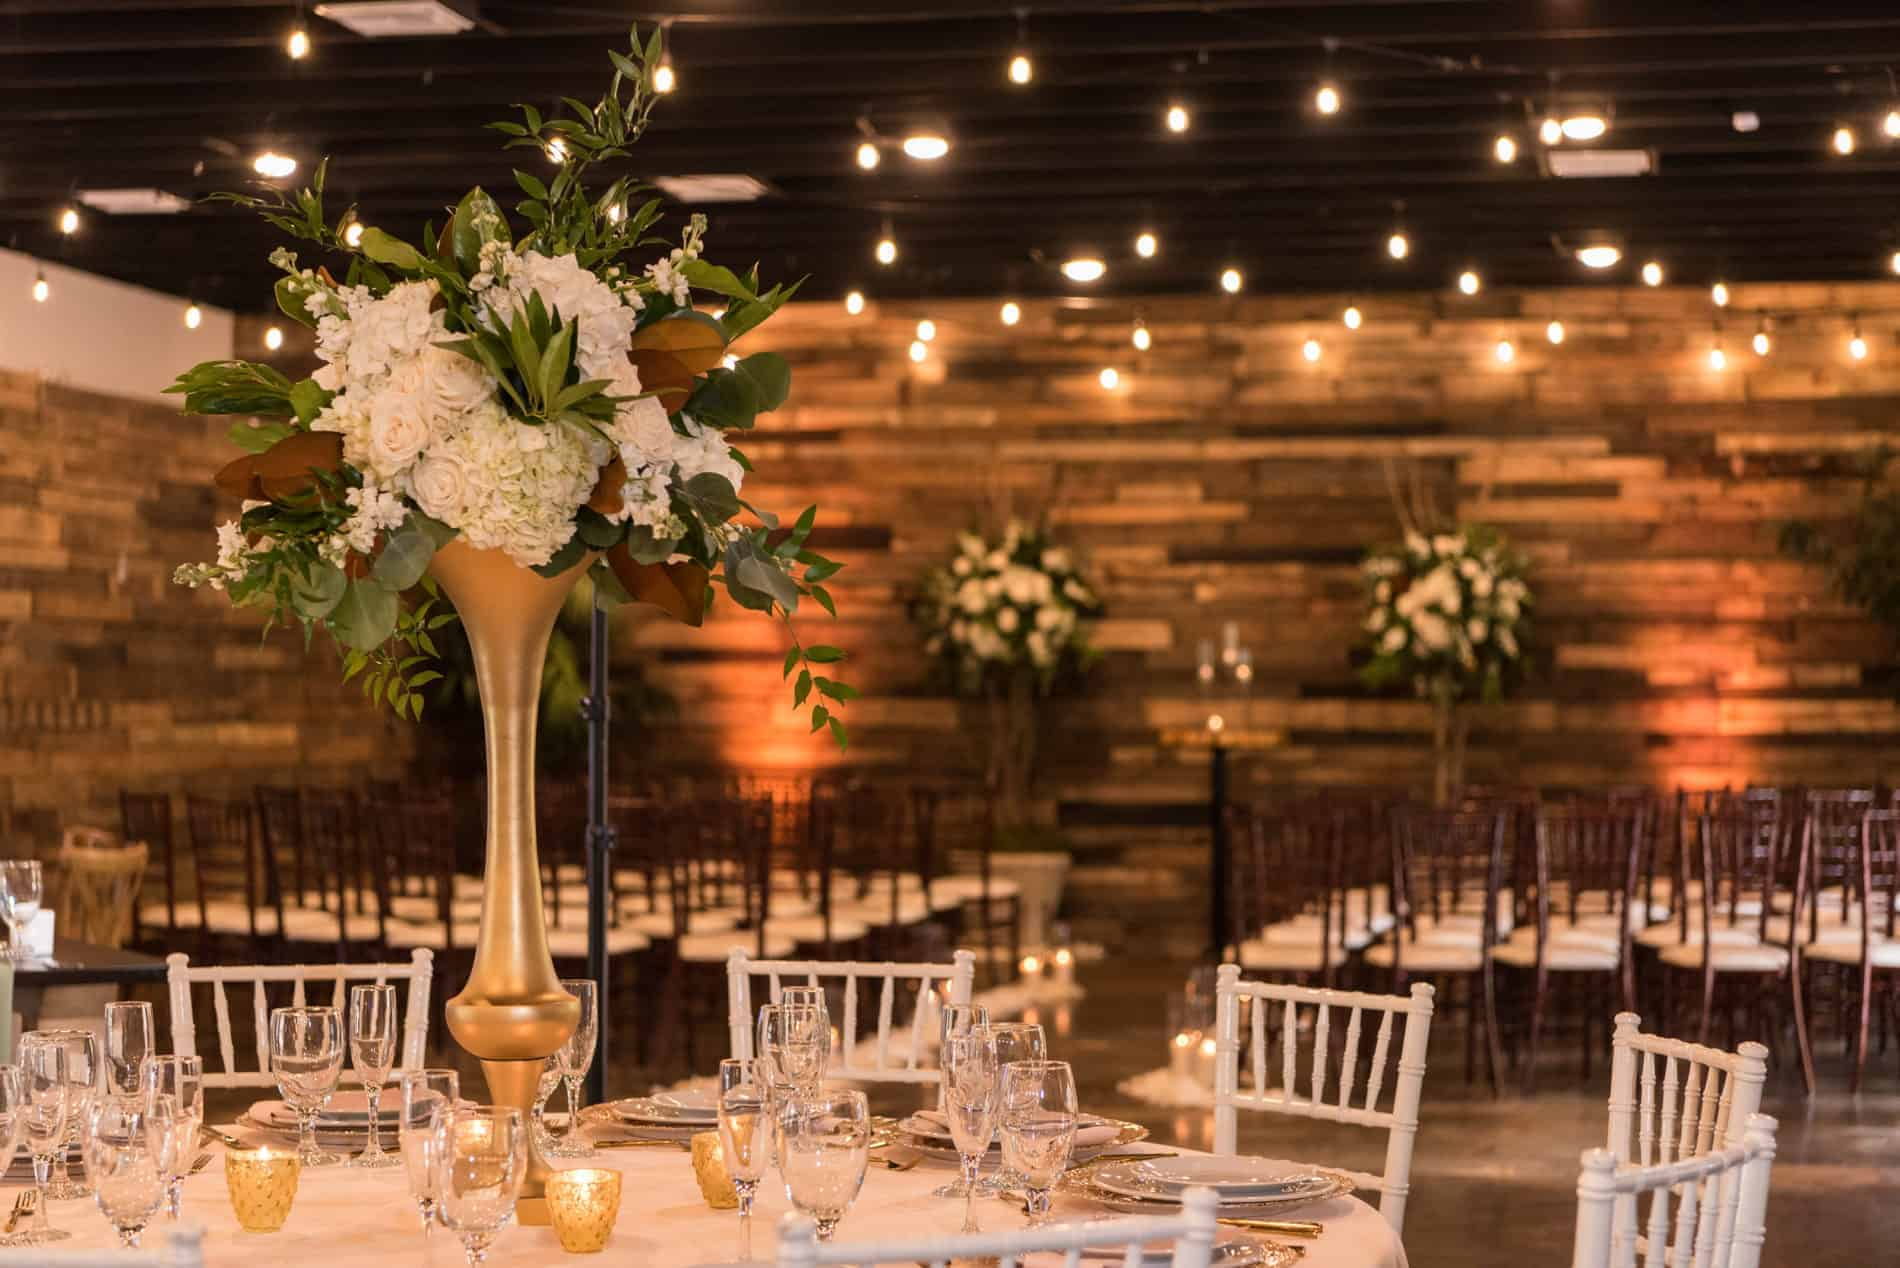 Reclaimed wood wall in a rustic reception setting